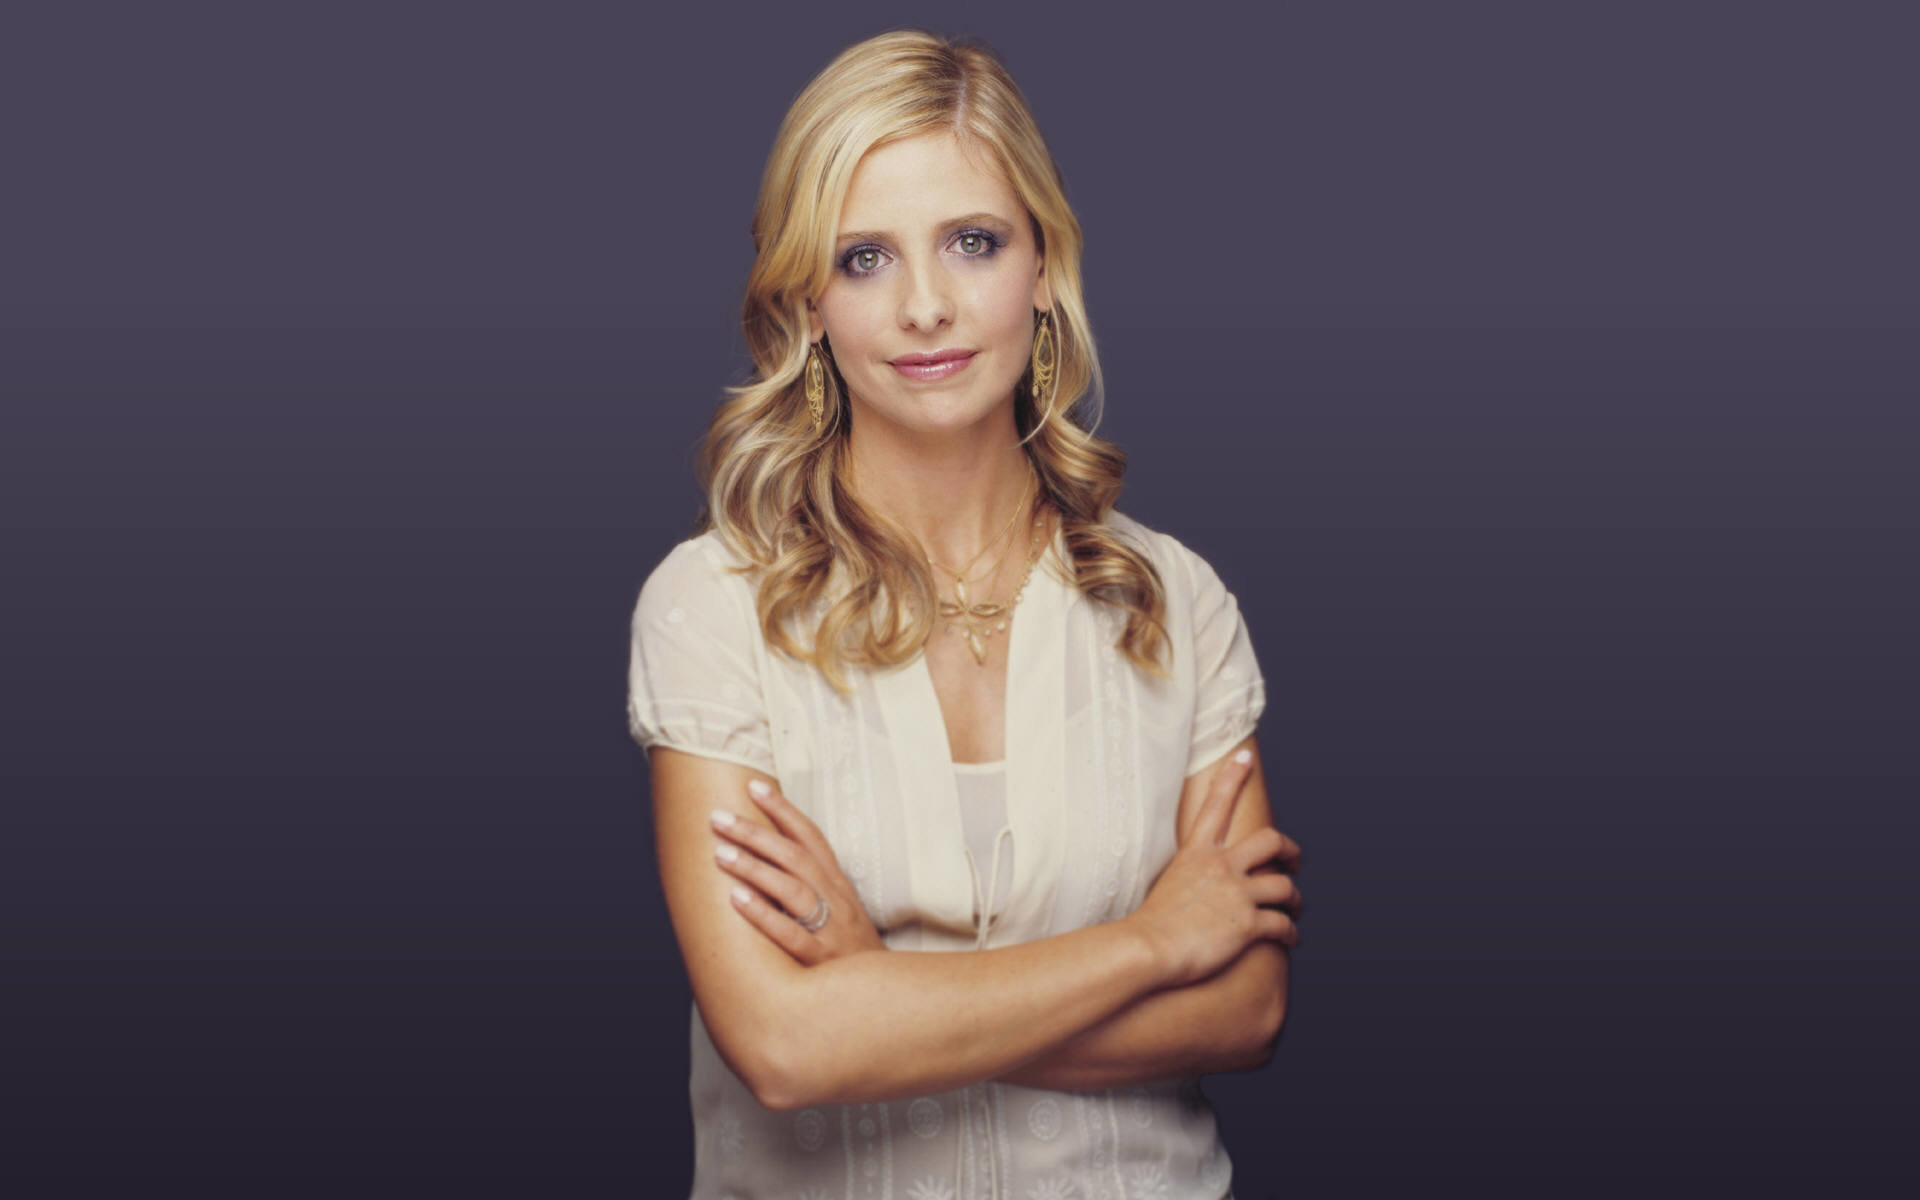 Free Sarah Michelle Gellar high quality wallpaper ID:187863 for hd 1920x1200 computer